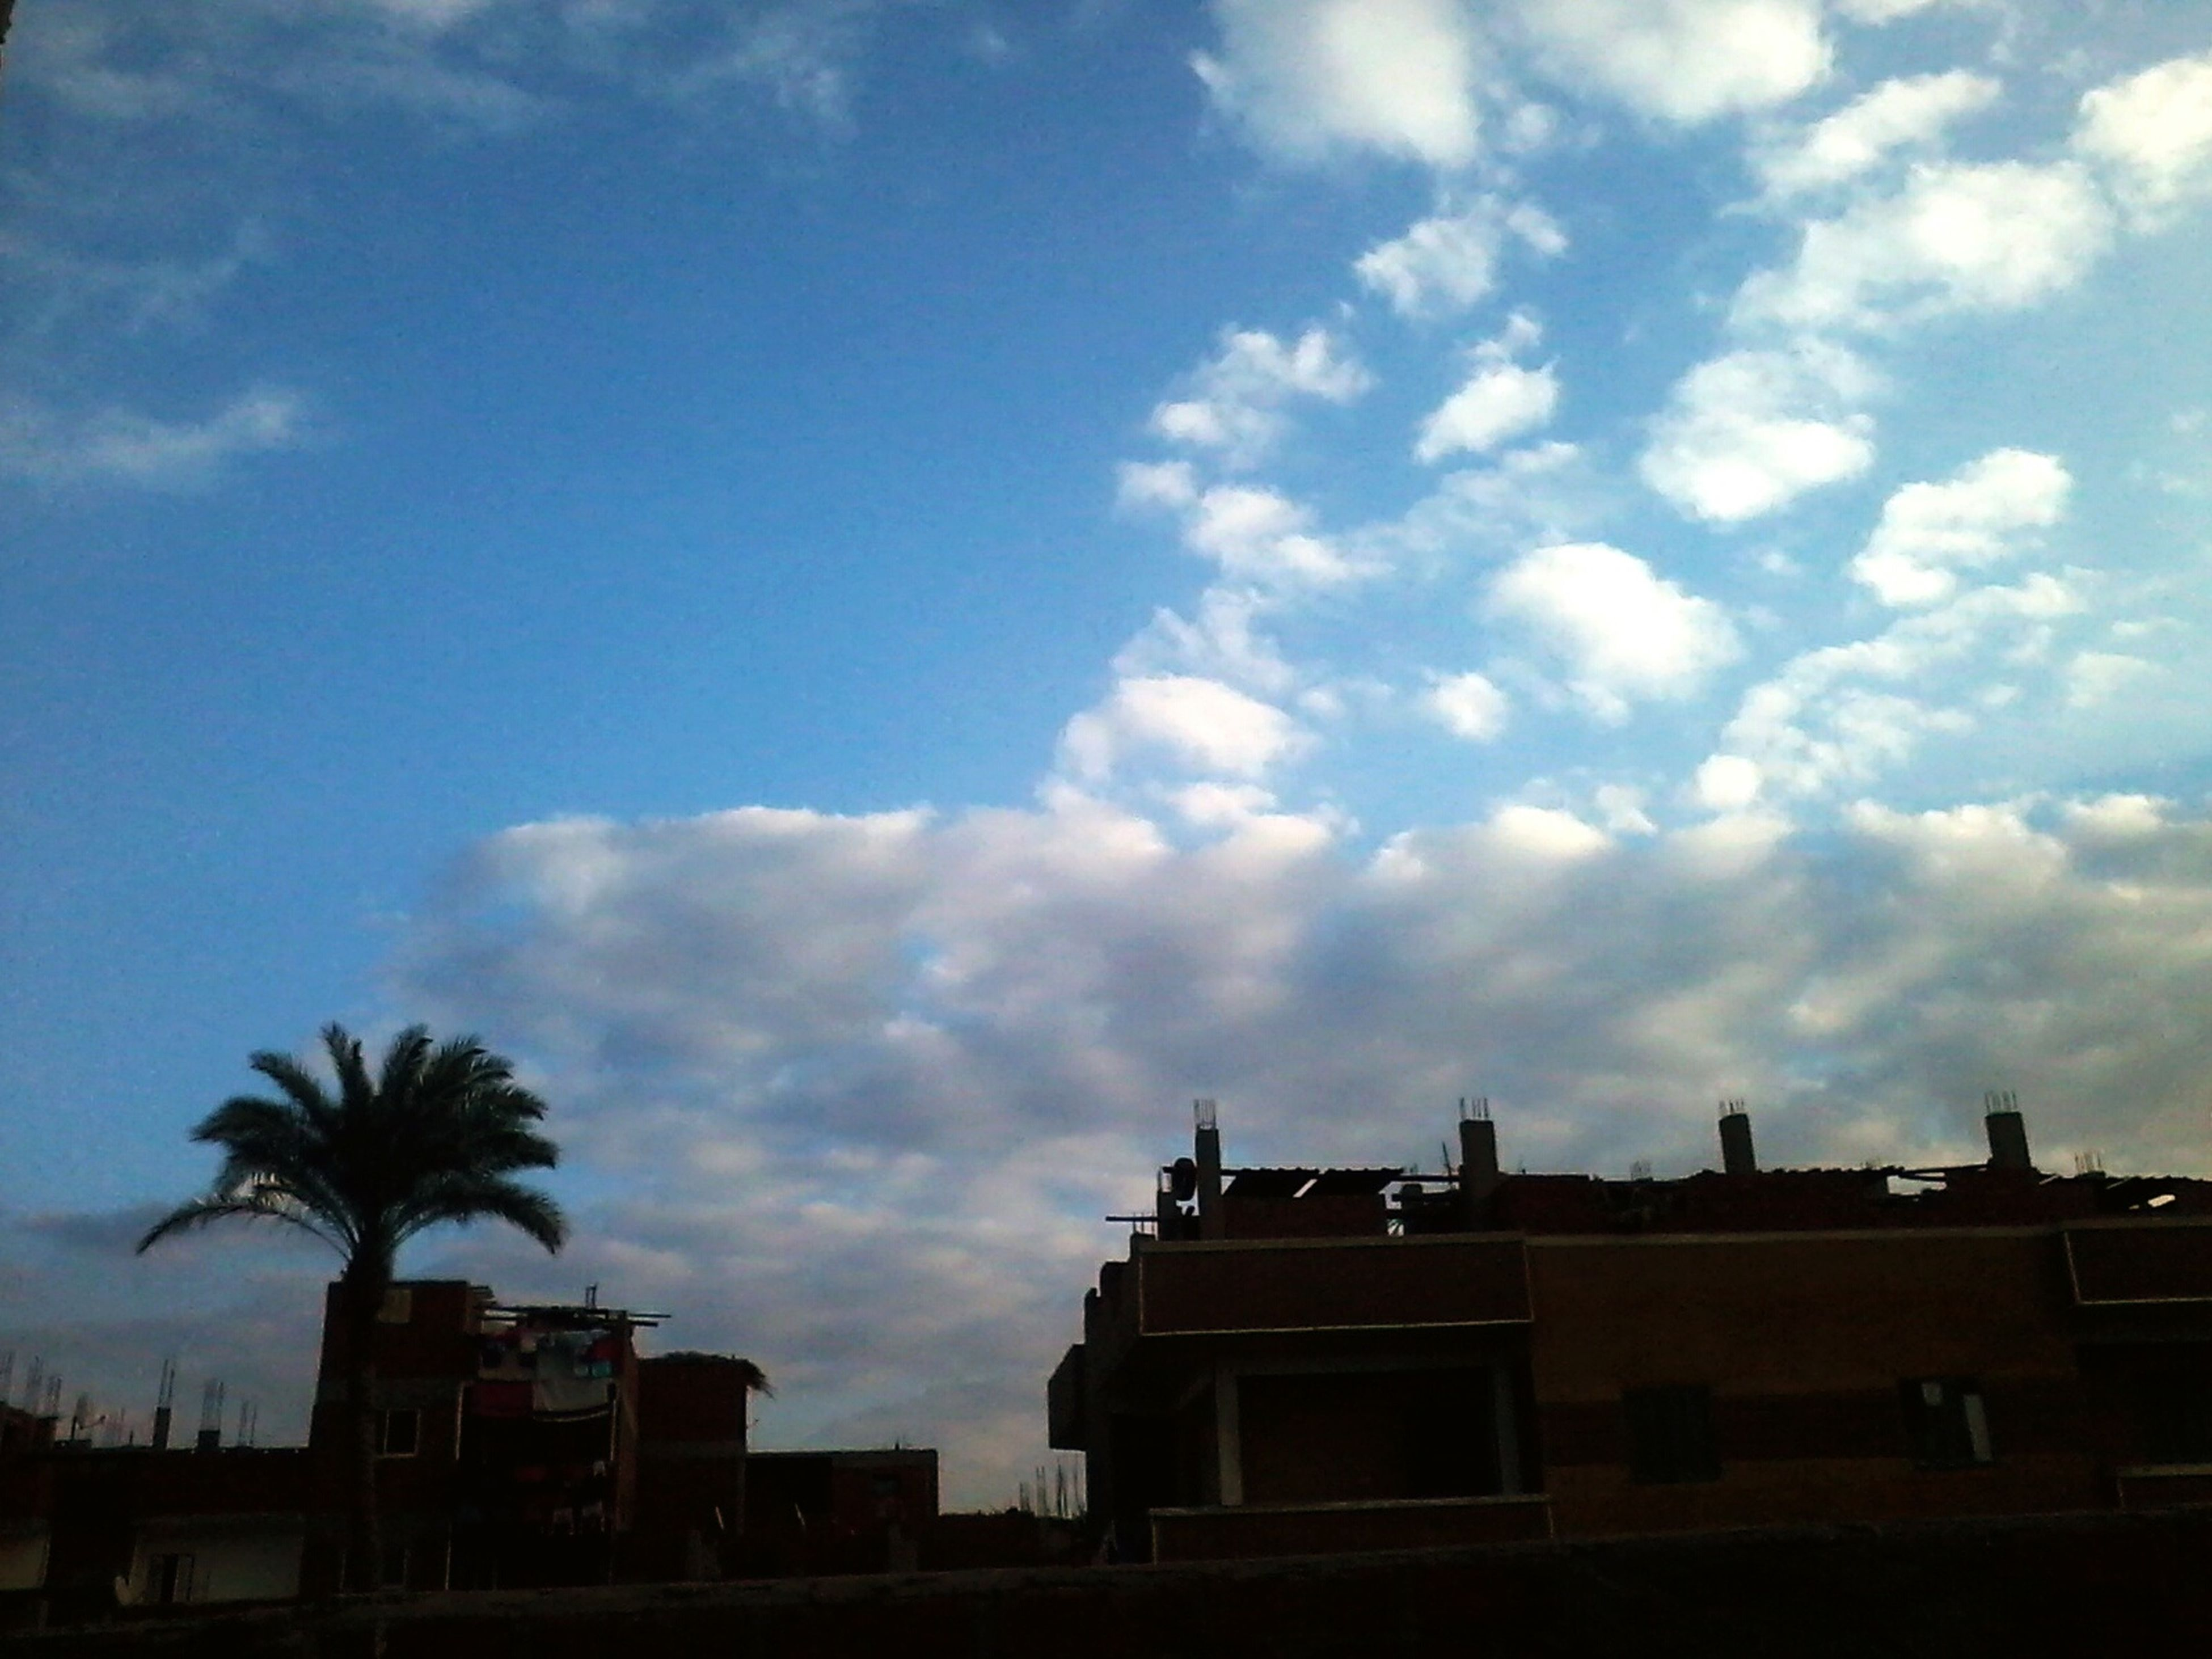 sky, architecture, built structure, cloud - sky, low angle view, building exterior, no people, outdoors, day